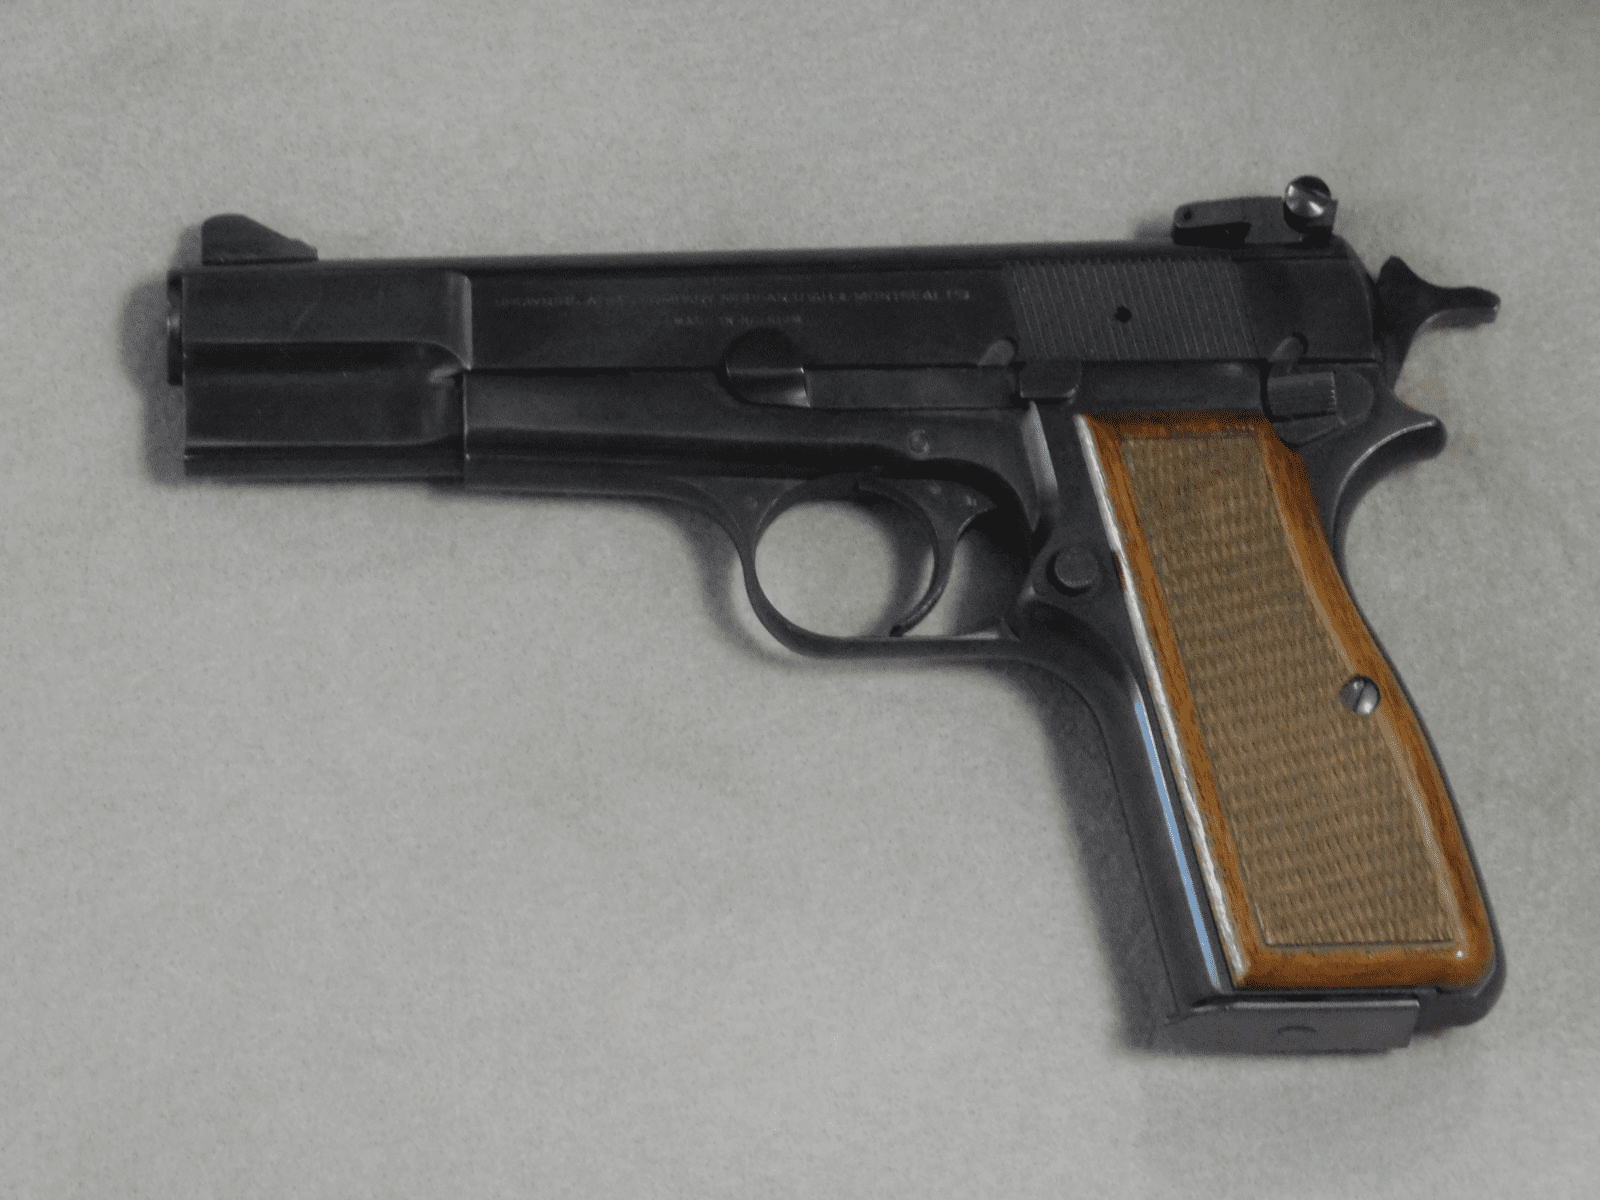 Browning HI Power (9mm) ***Pending***